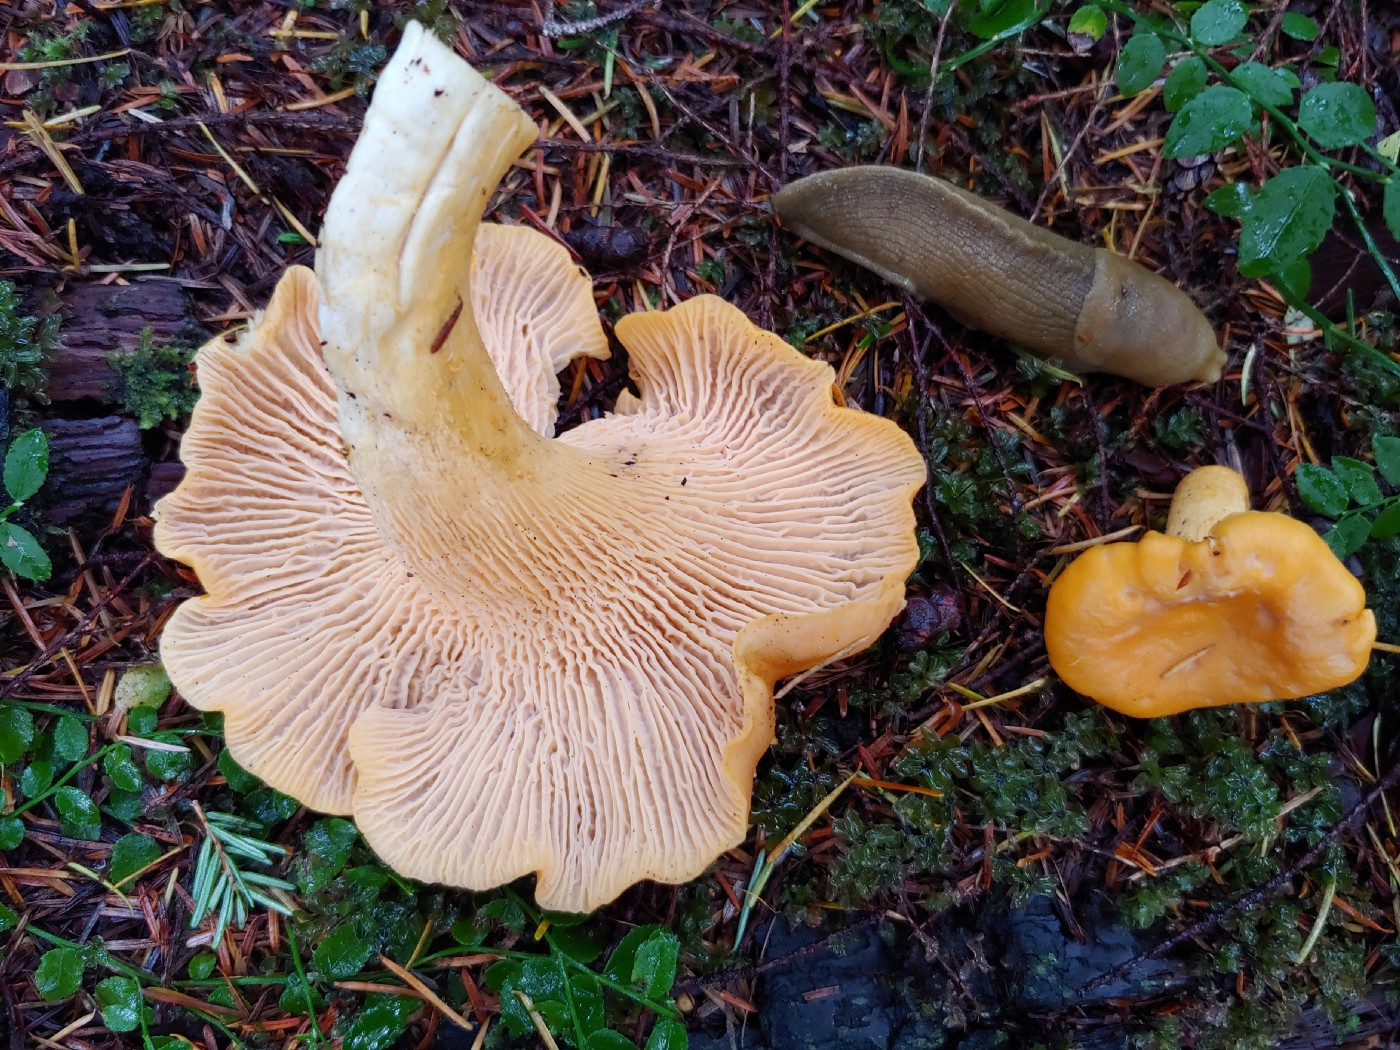 A pair of chanterelles on the forest floor with a slug nearby